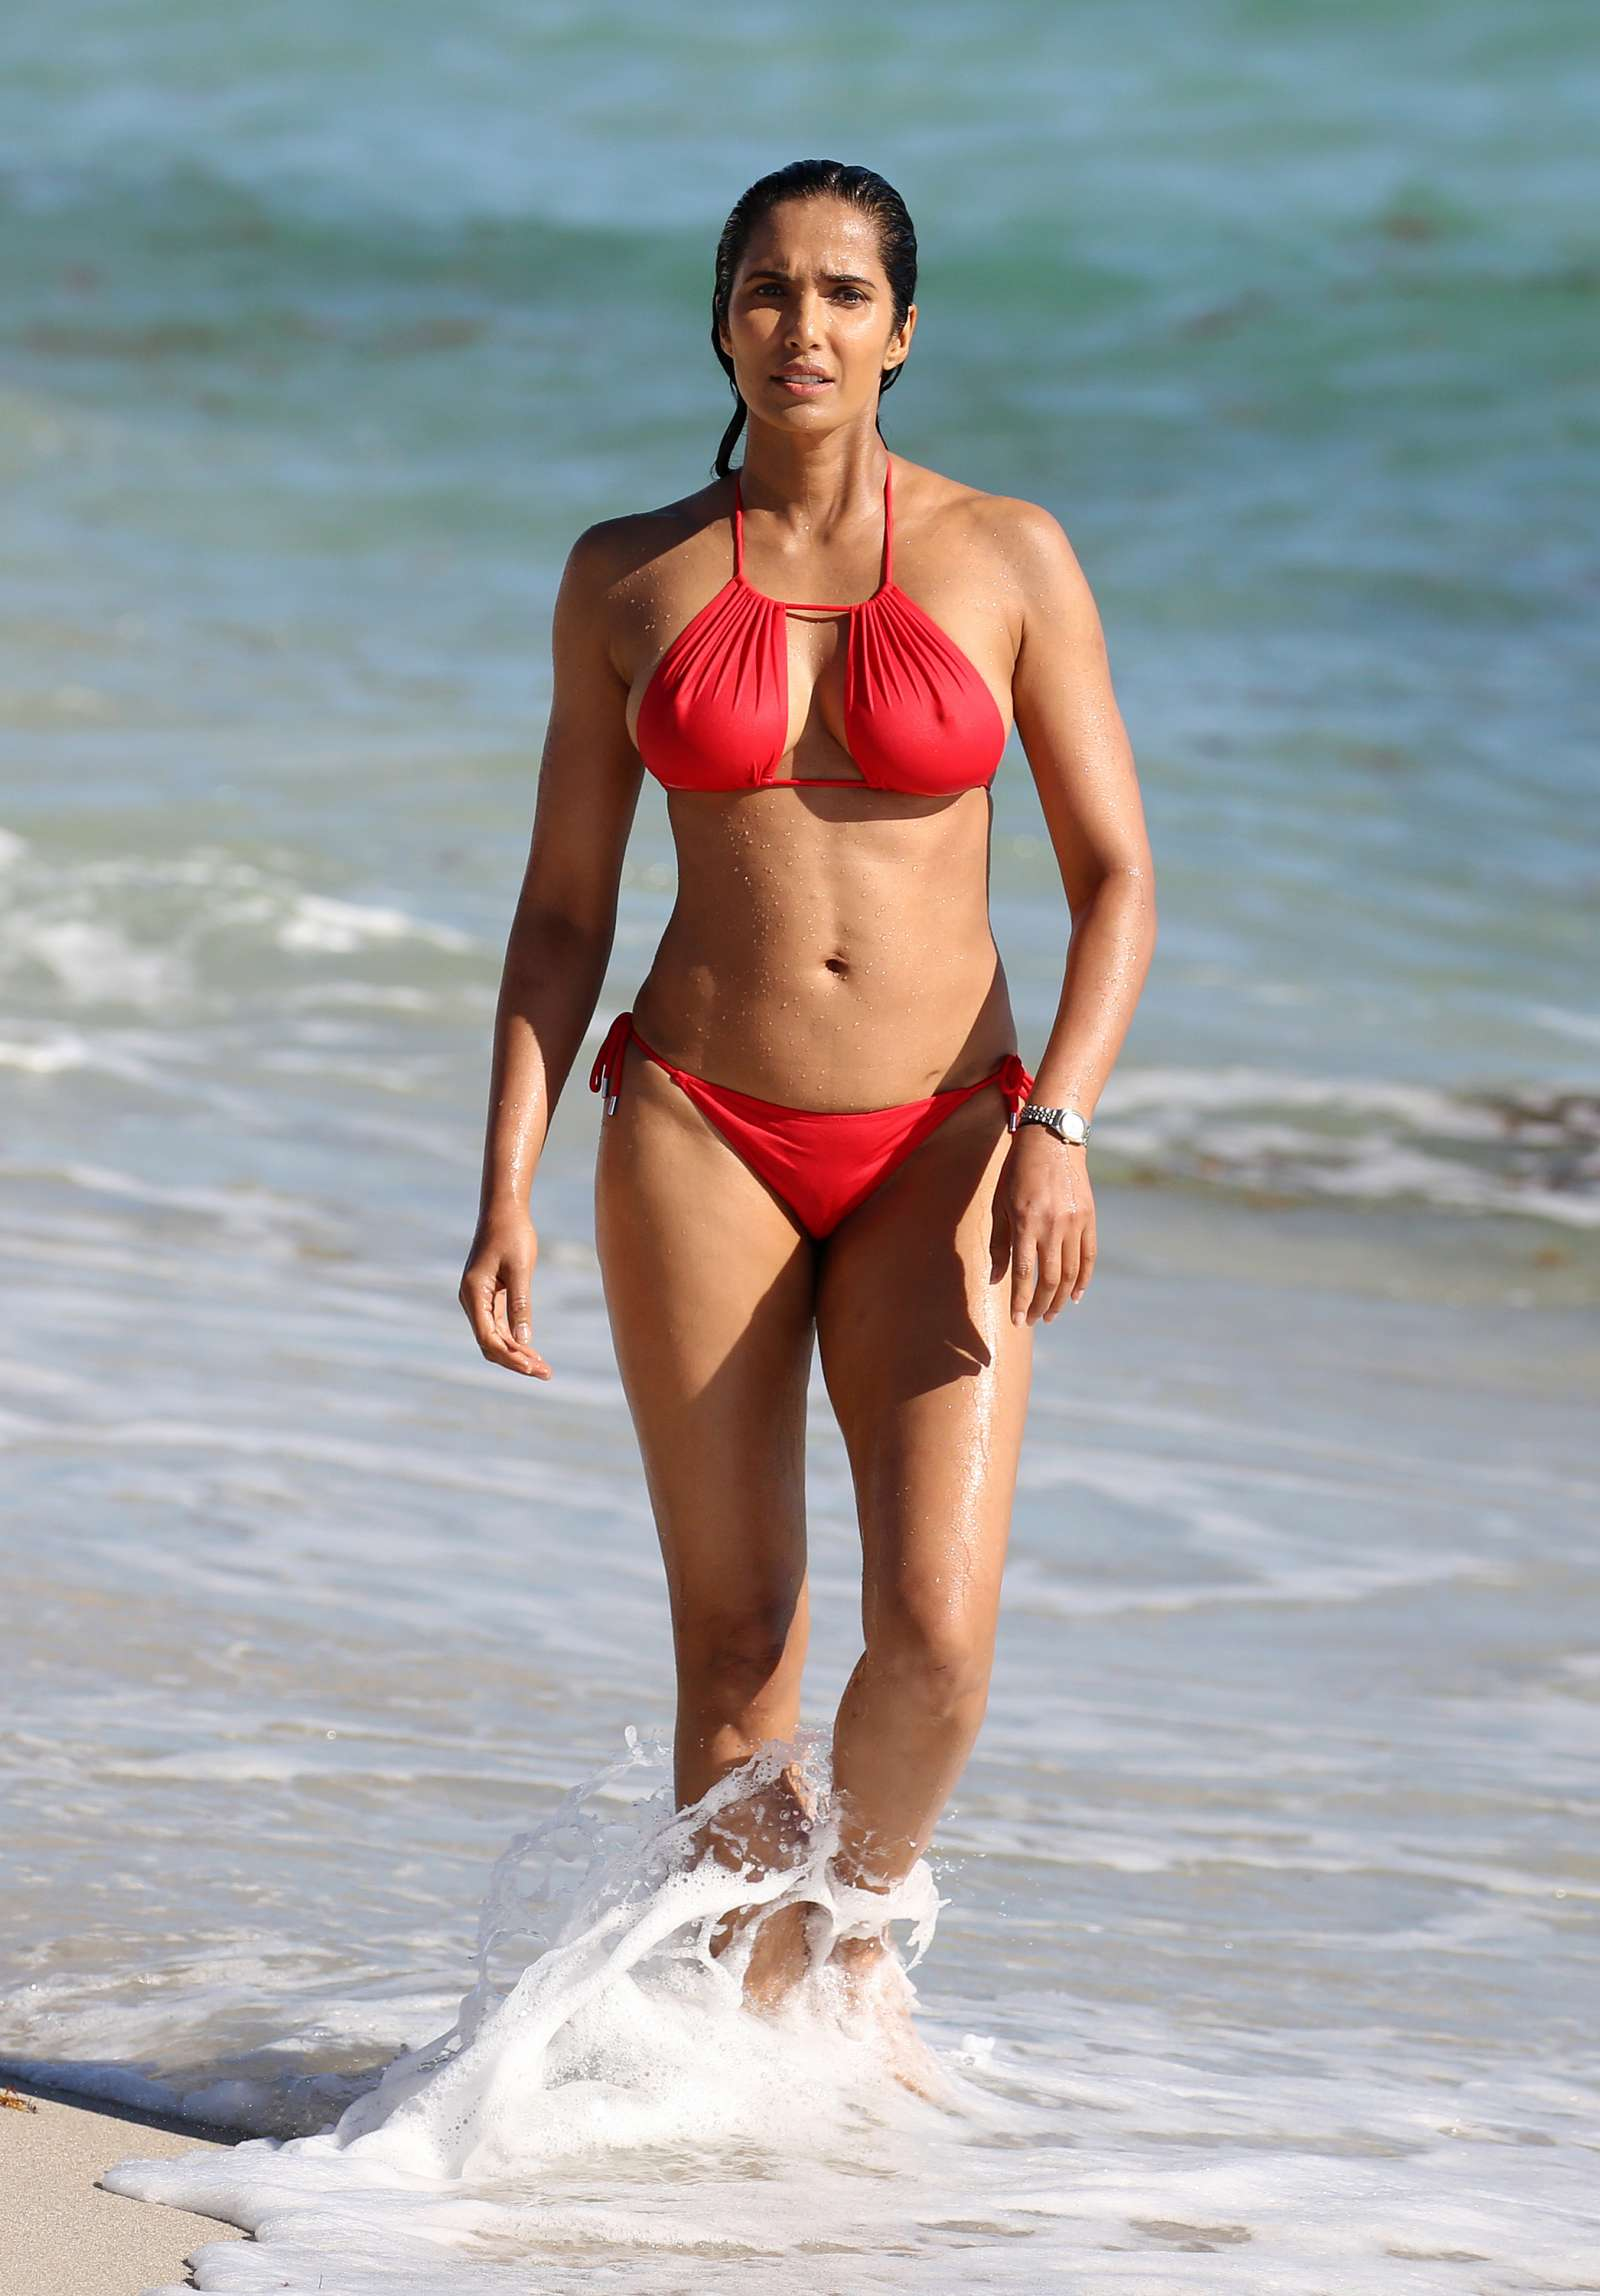 Padma Lakshmi in Red Bikini at the beach in Miami